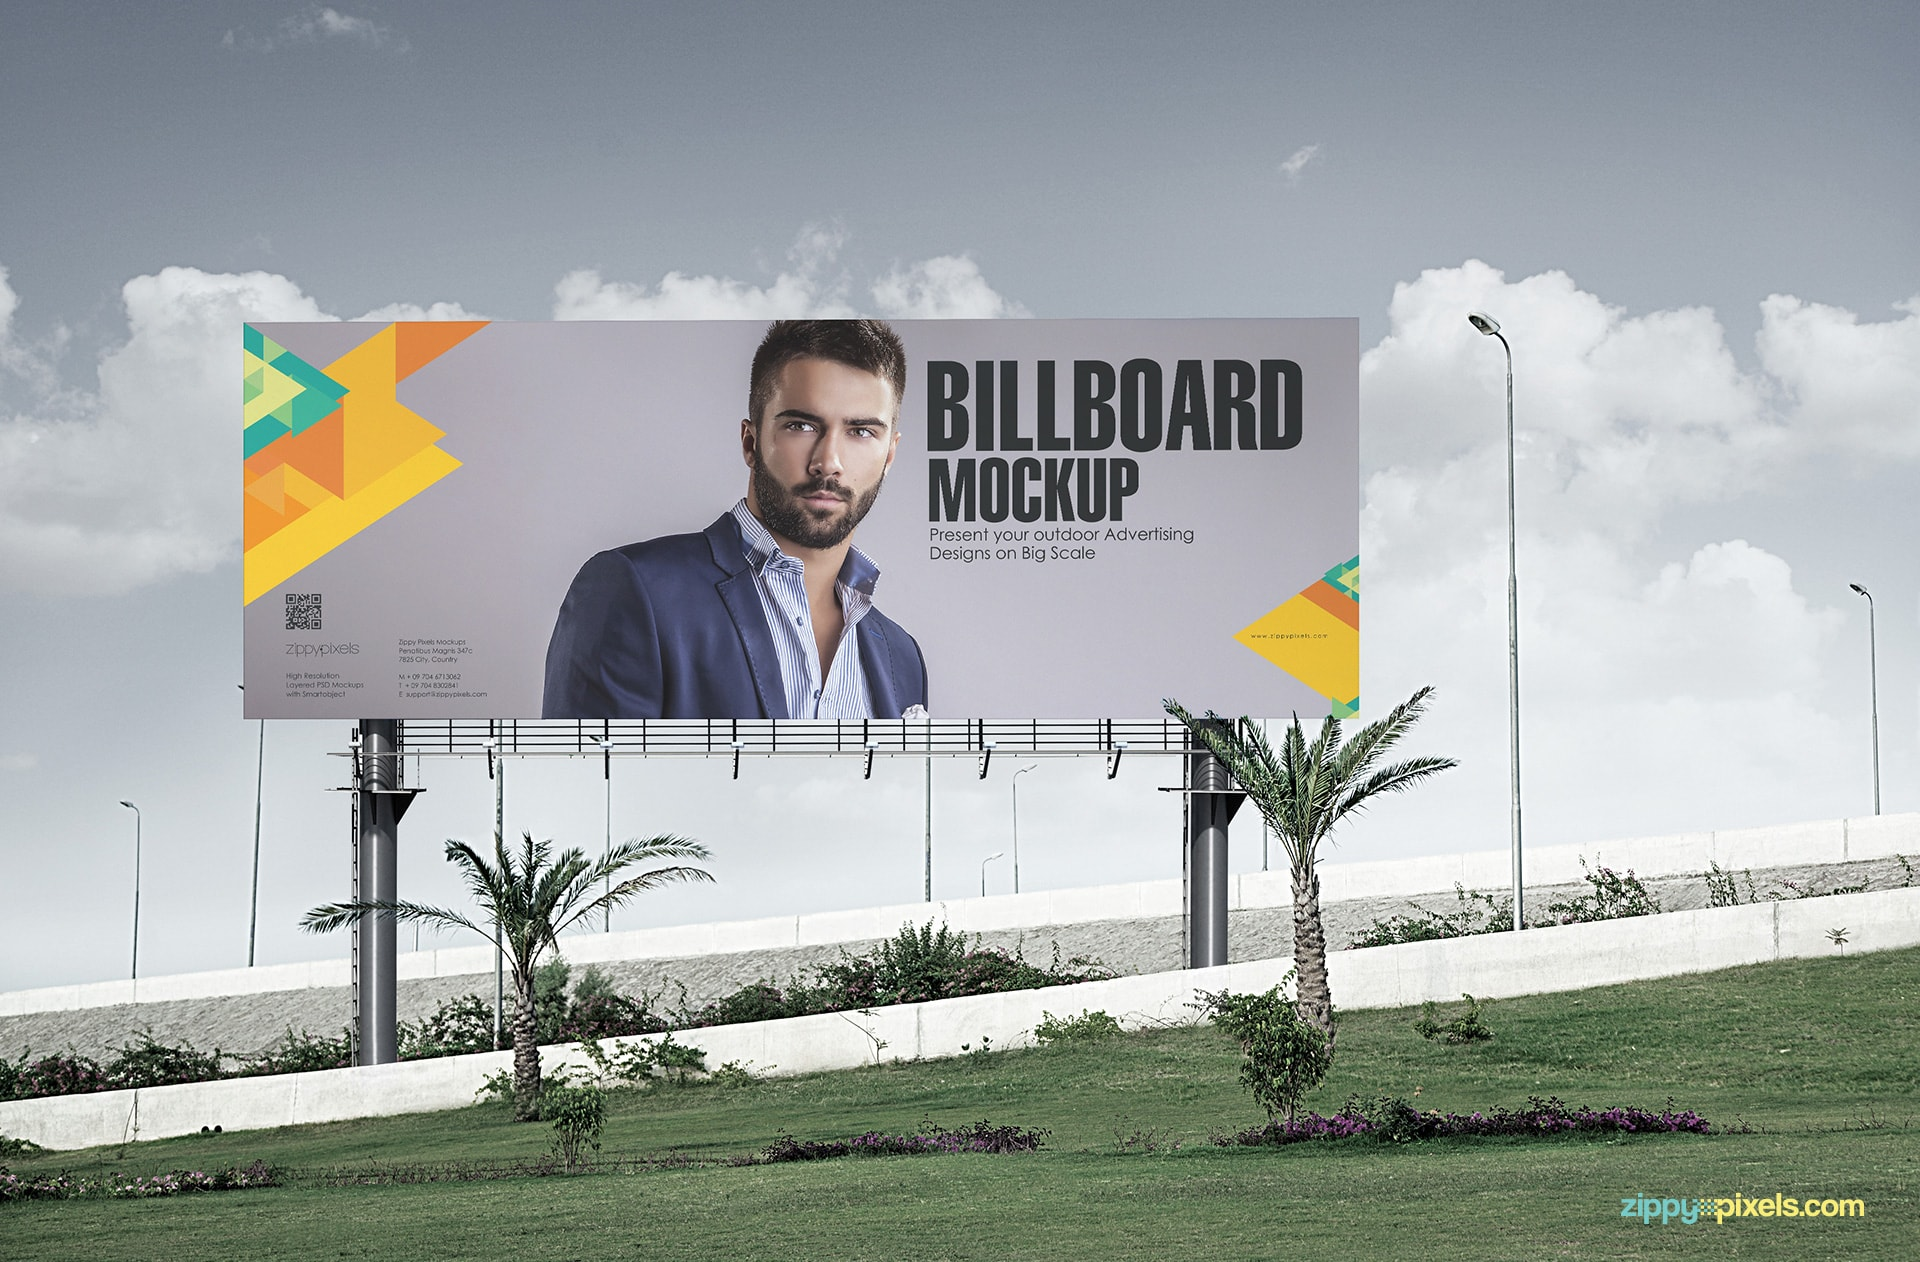 Billboard Mockup showing a super size billboard